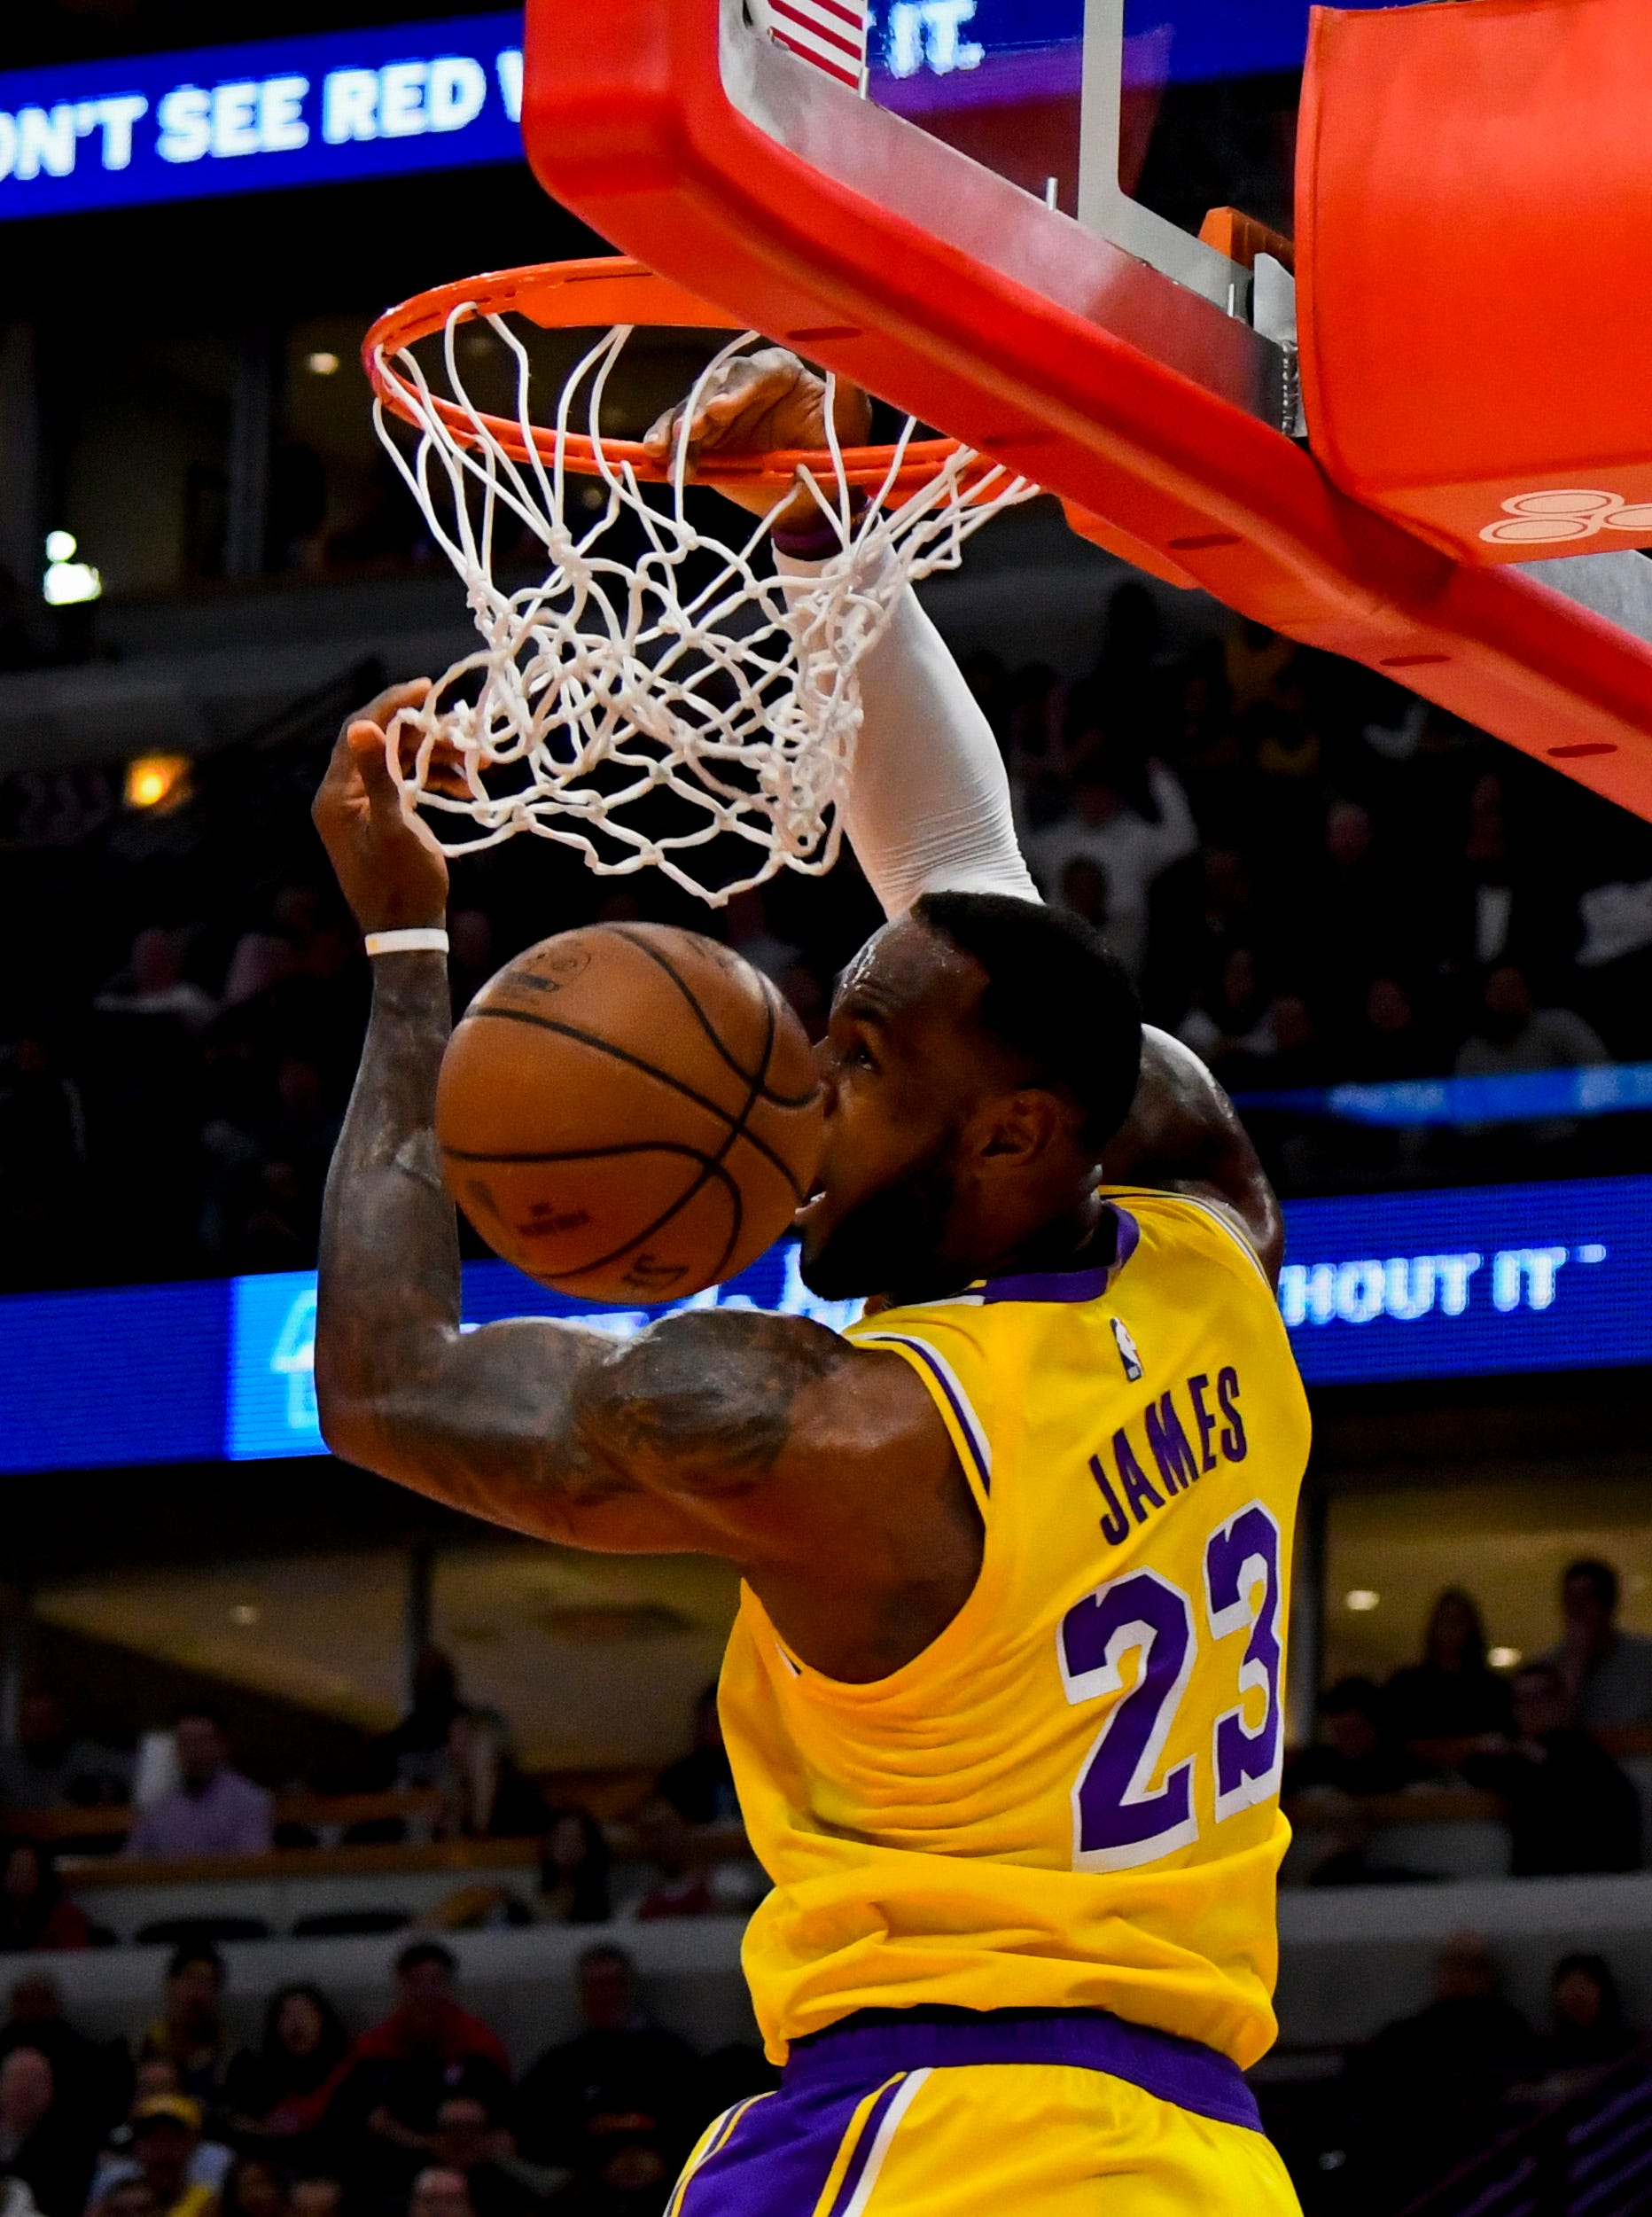 LeBron James, who announced July 1 he would sign with the Lakers, has had an up-and-down first year in L.A.